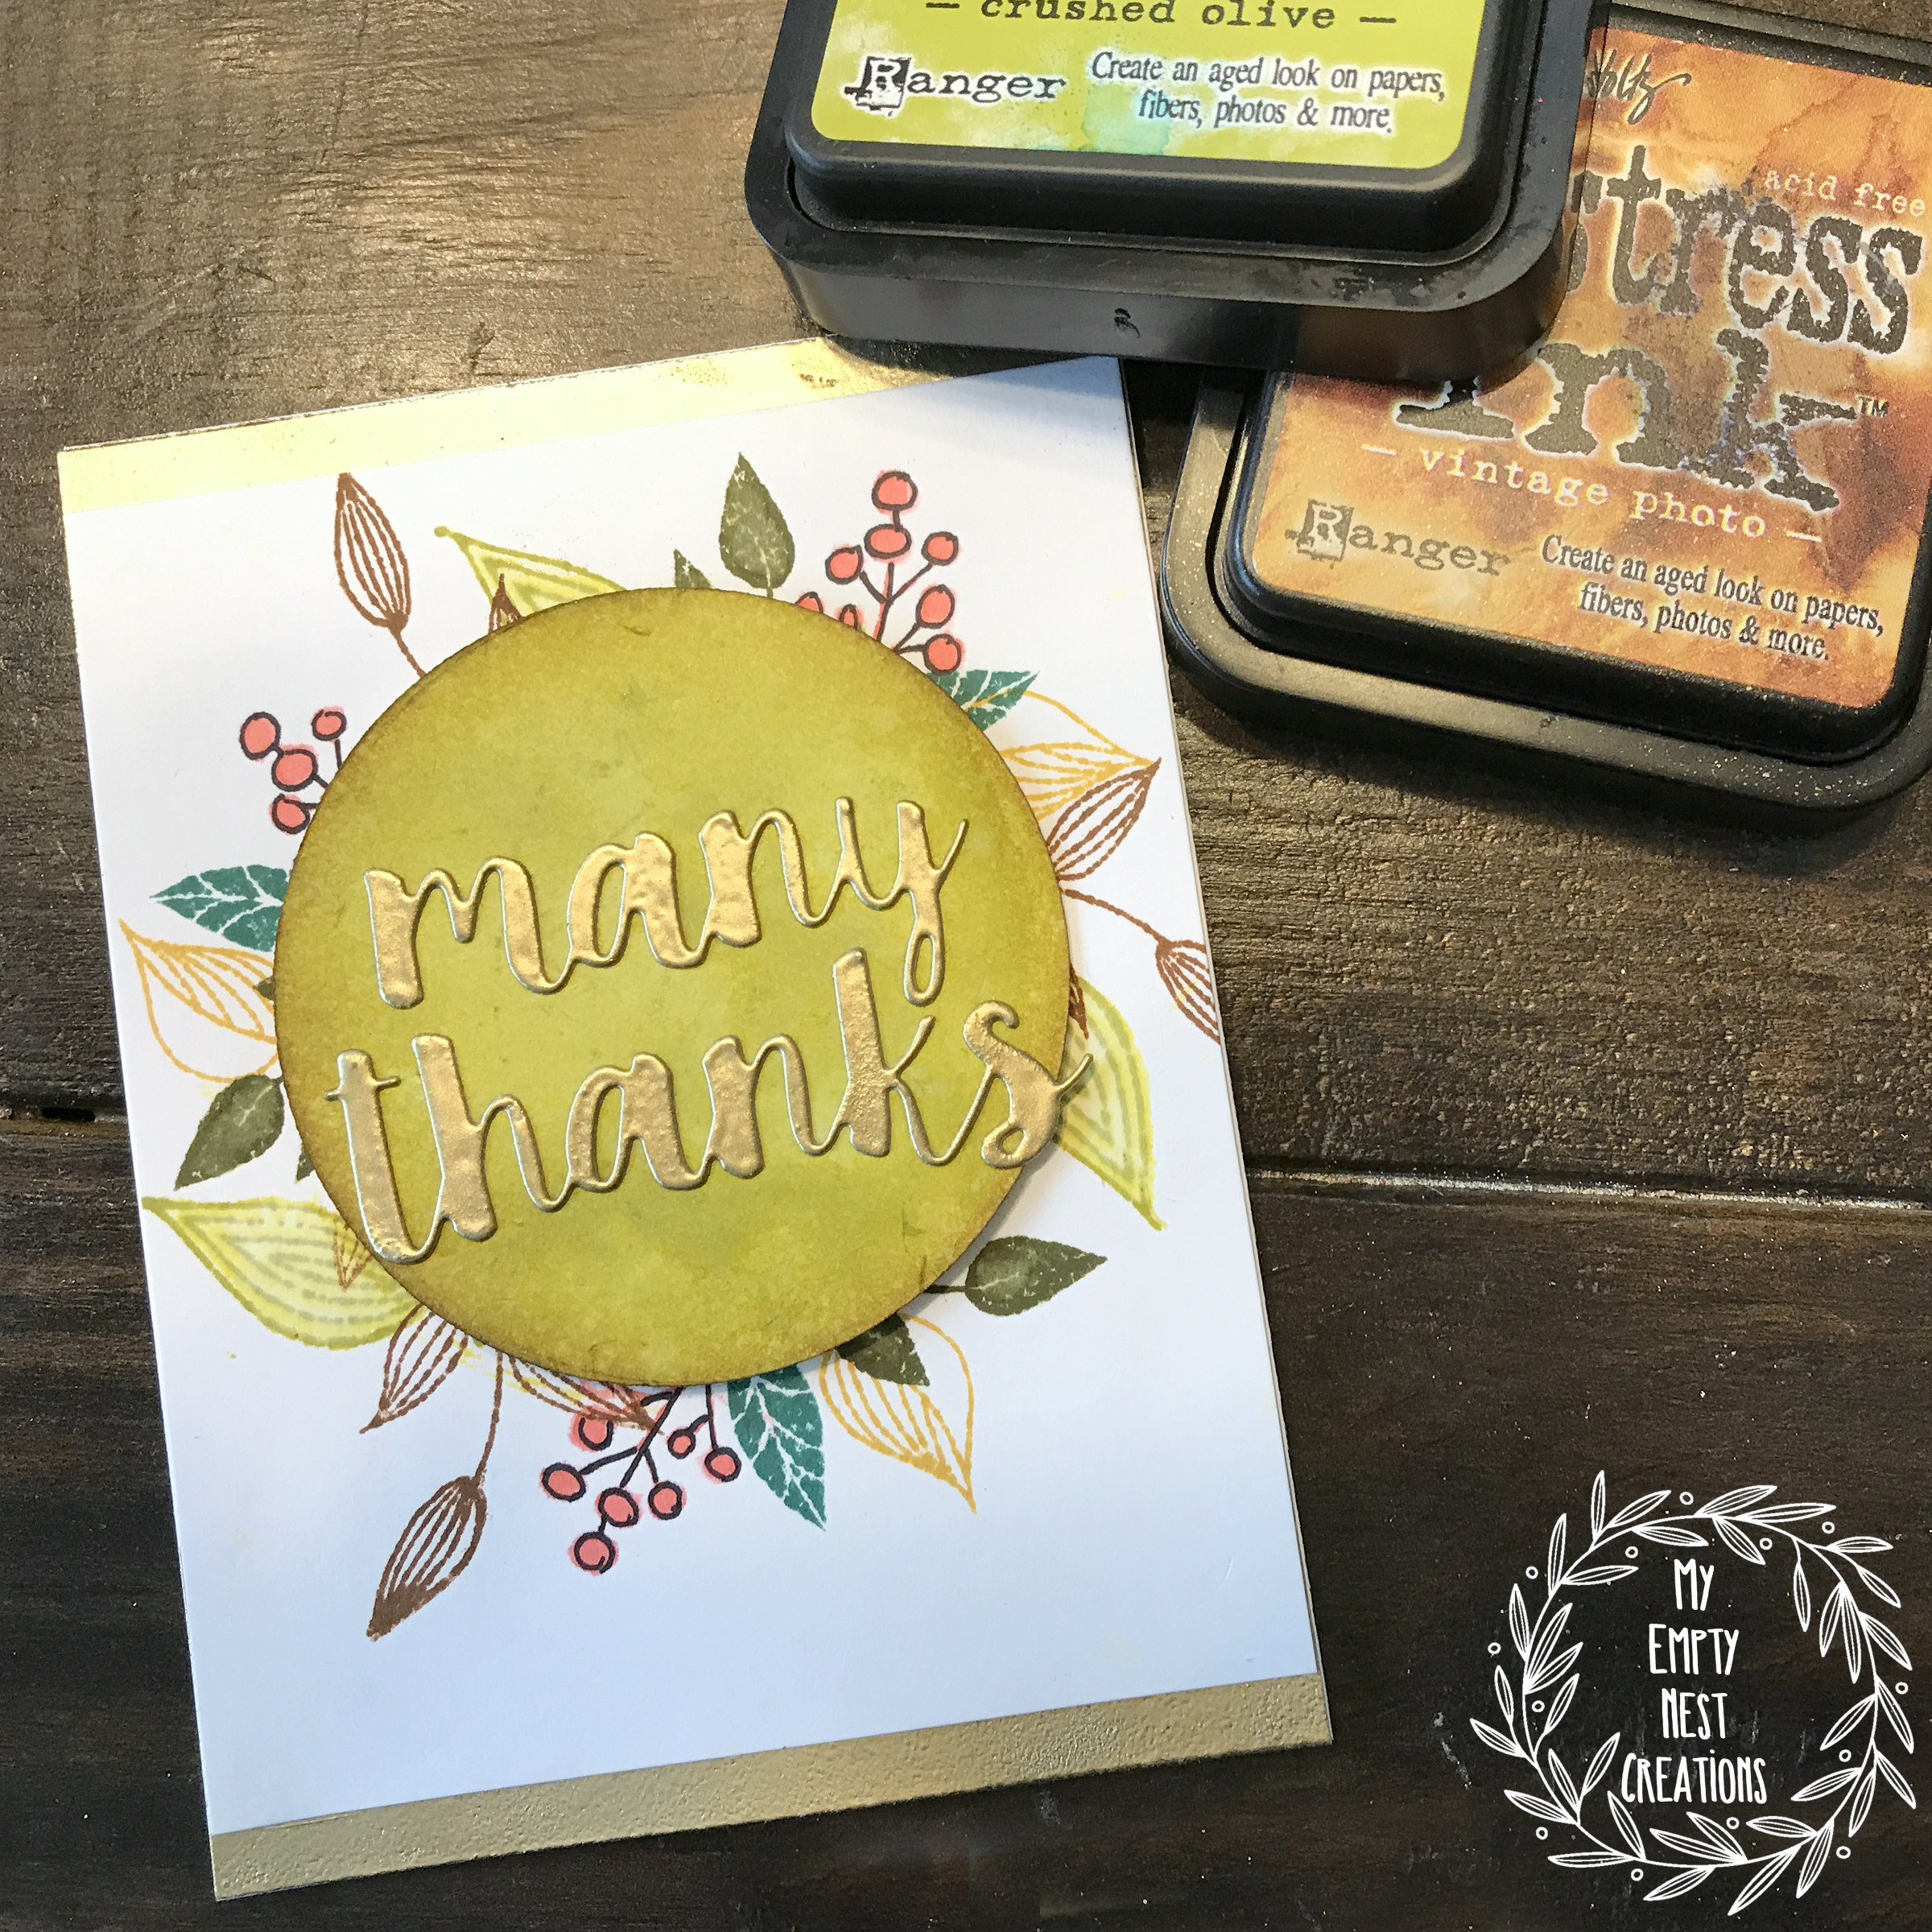 My Empty Nest Creations Stampendous Fronds Wreath Card